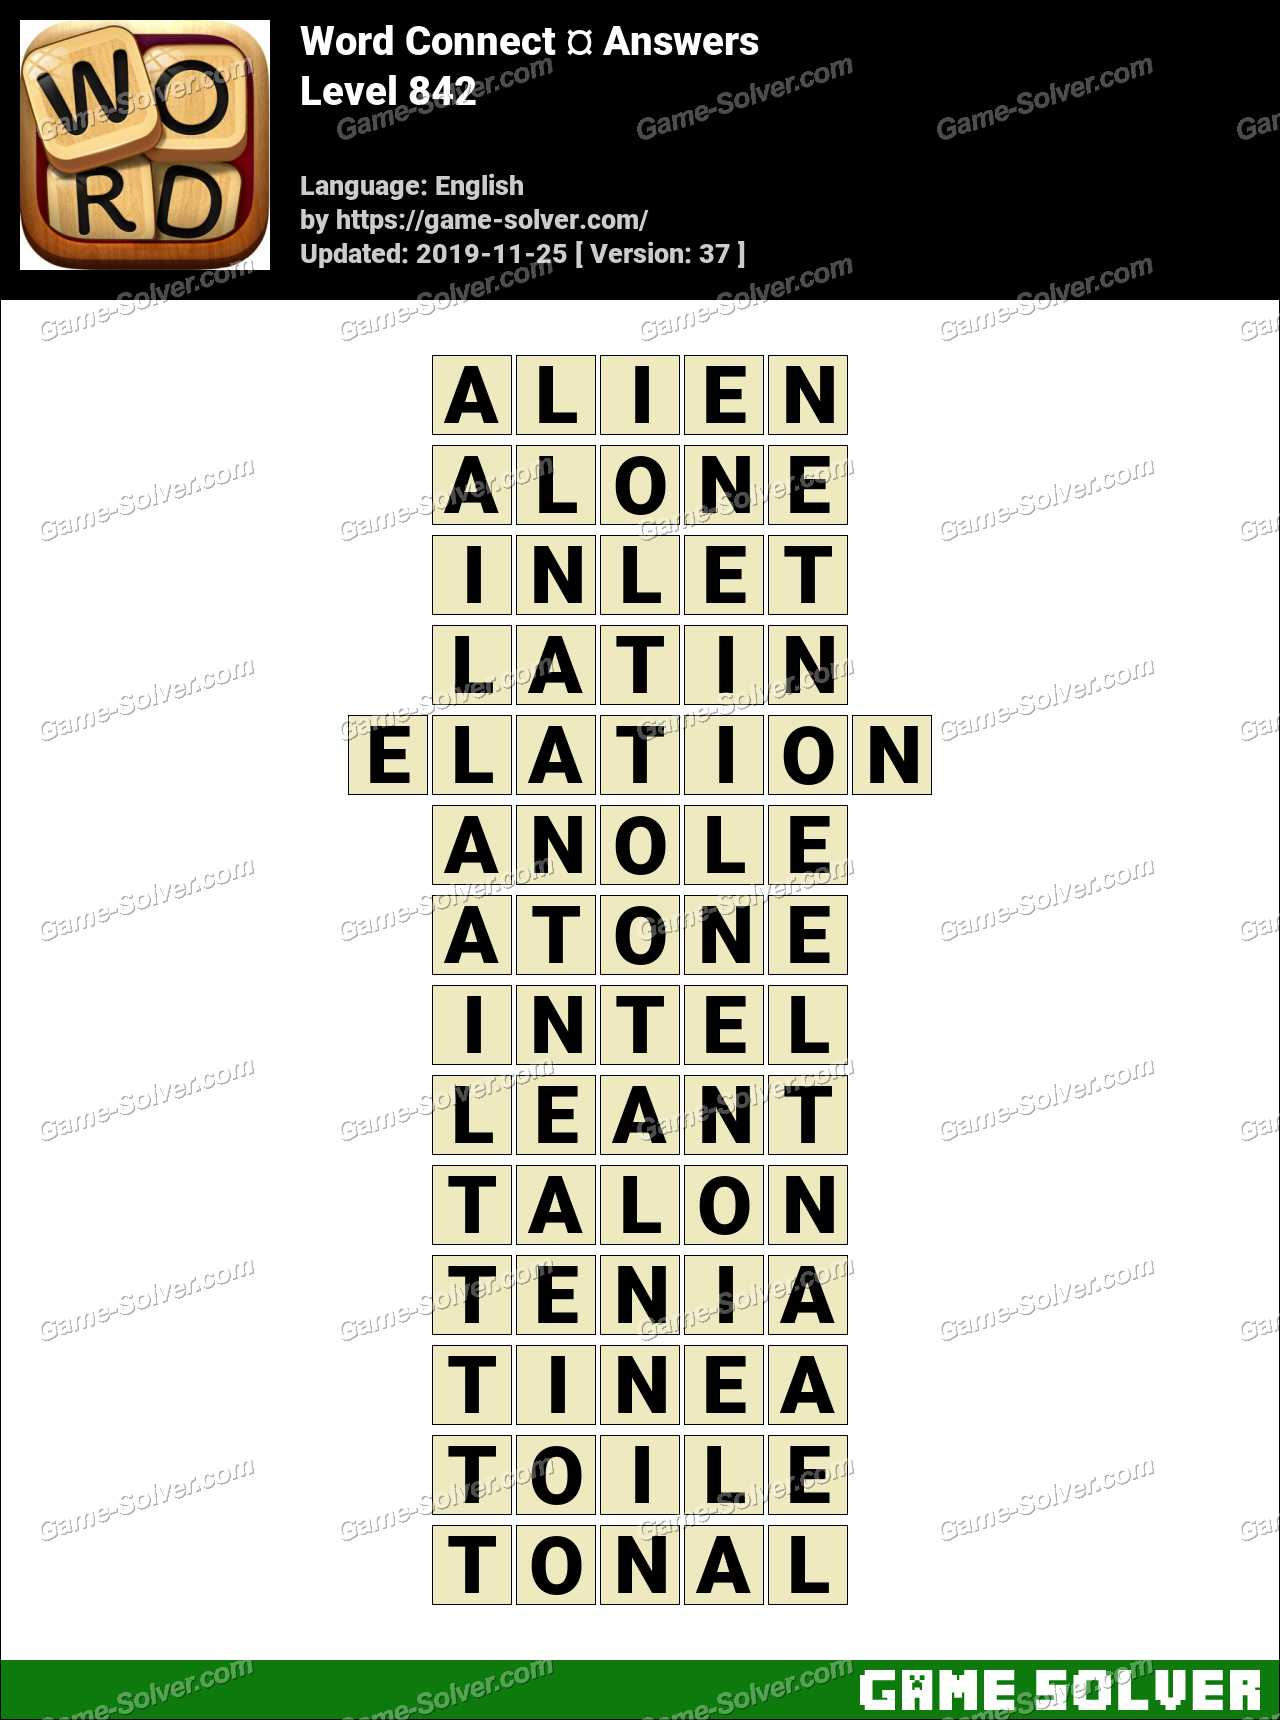 Word Connect Level 842 Answers